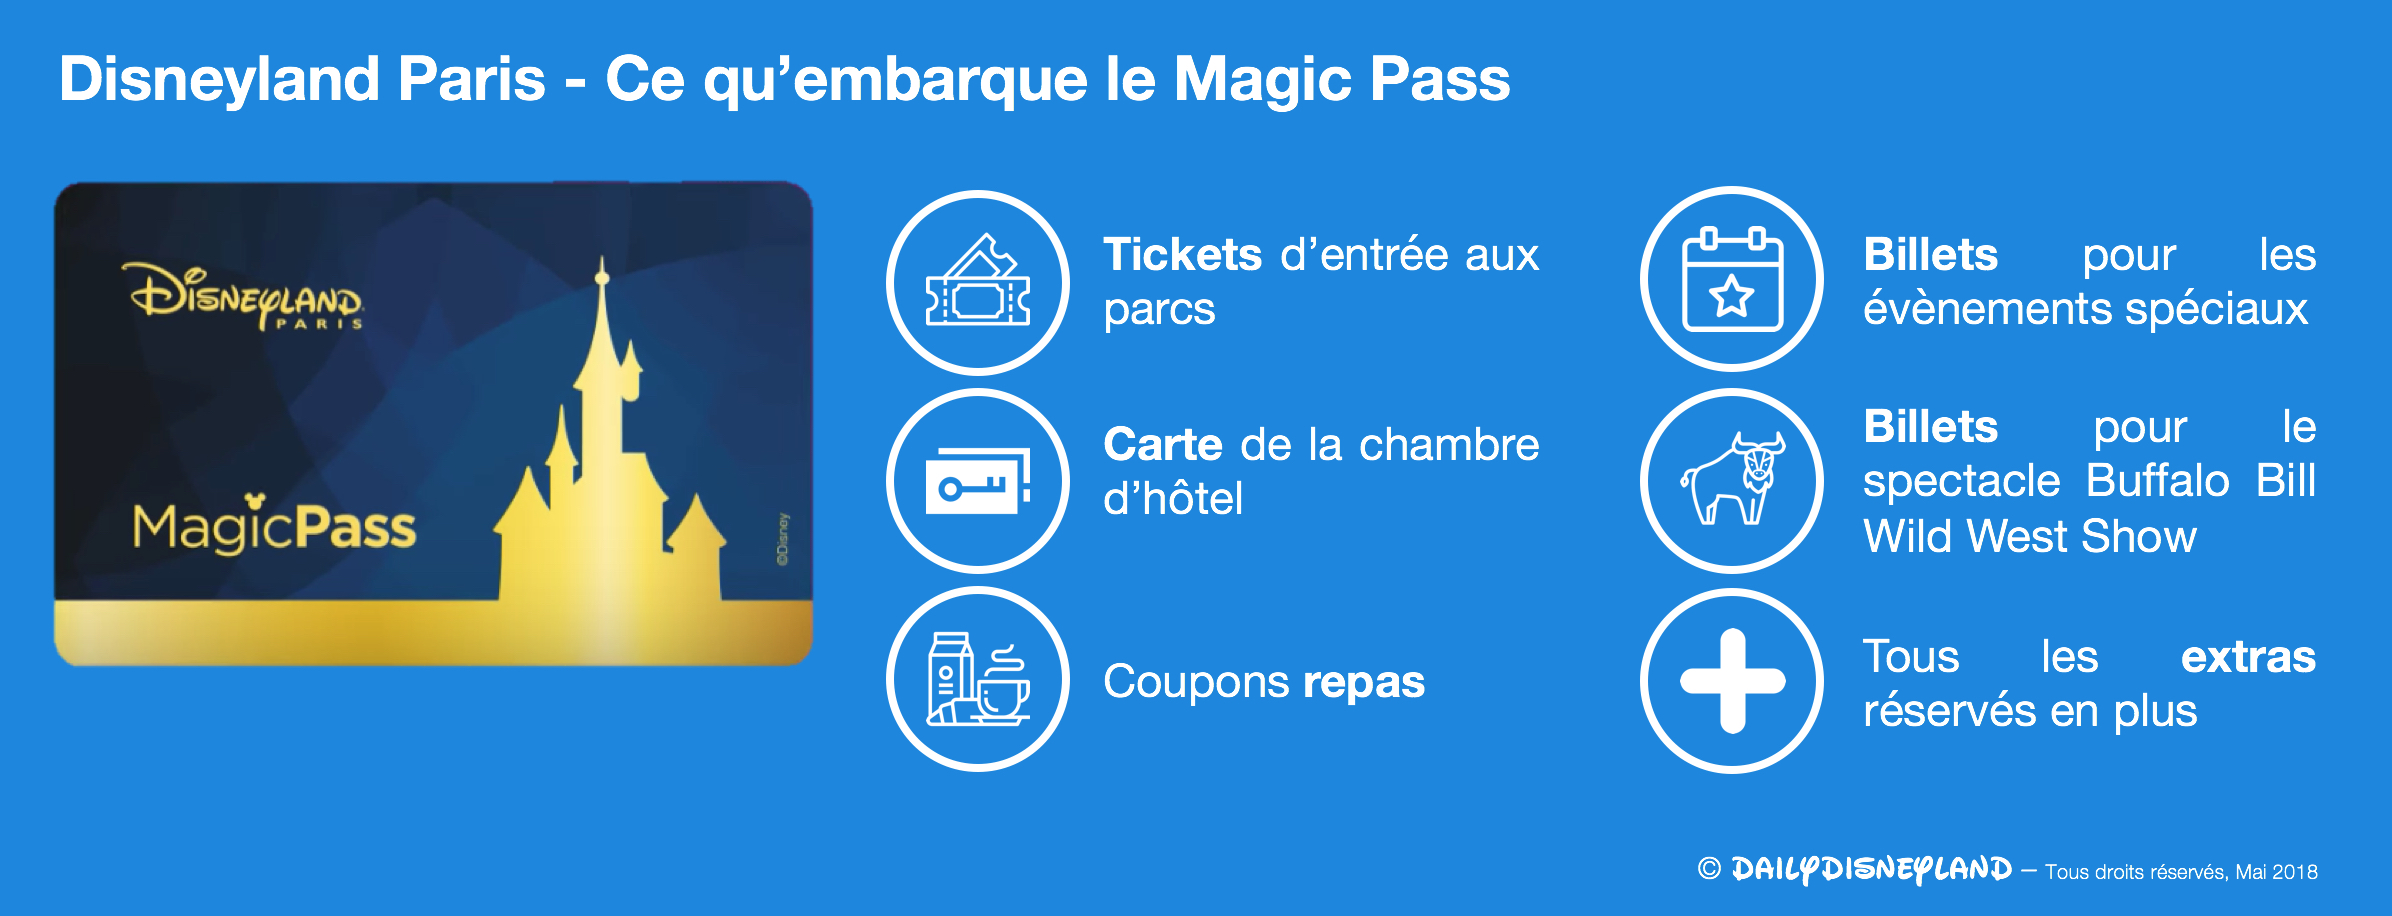 magic pass disneyland paris fonctionnalites